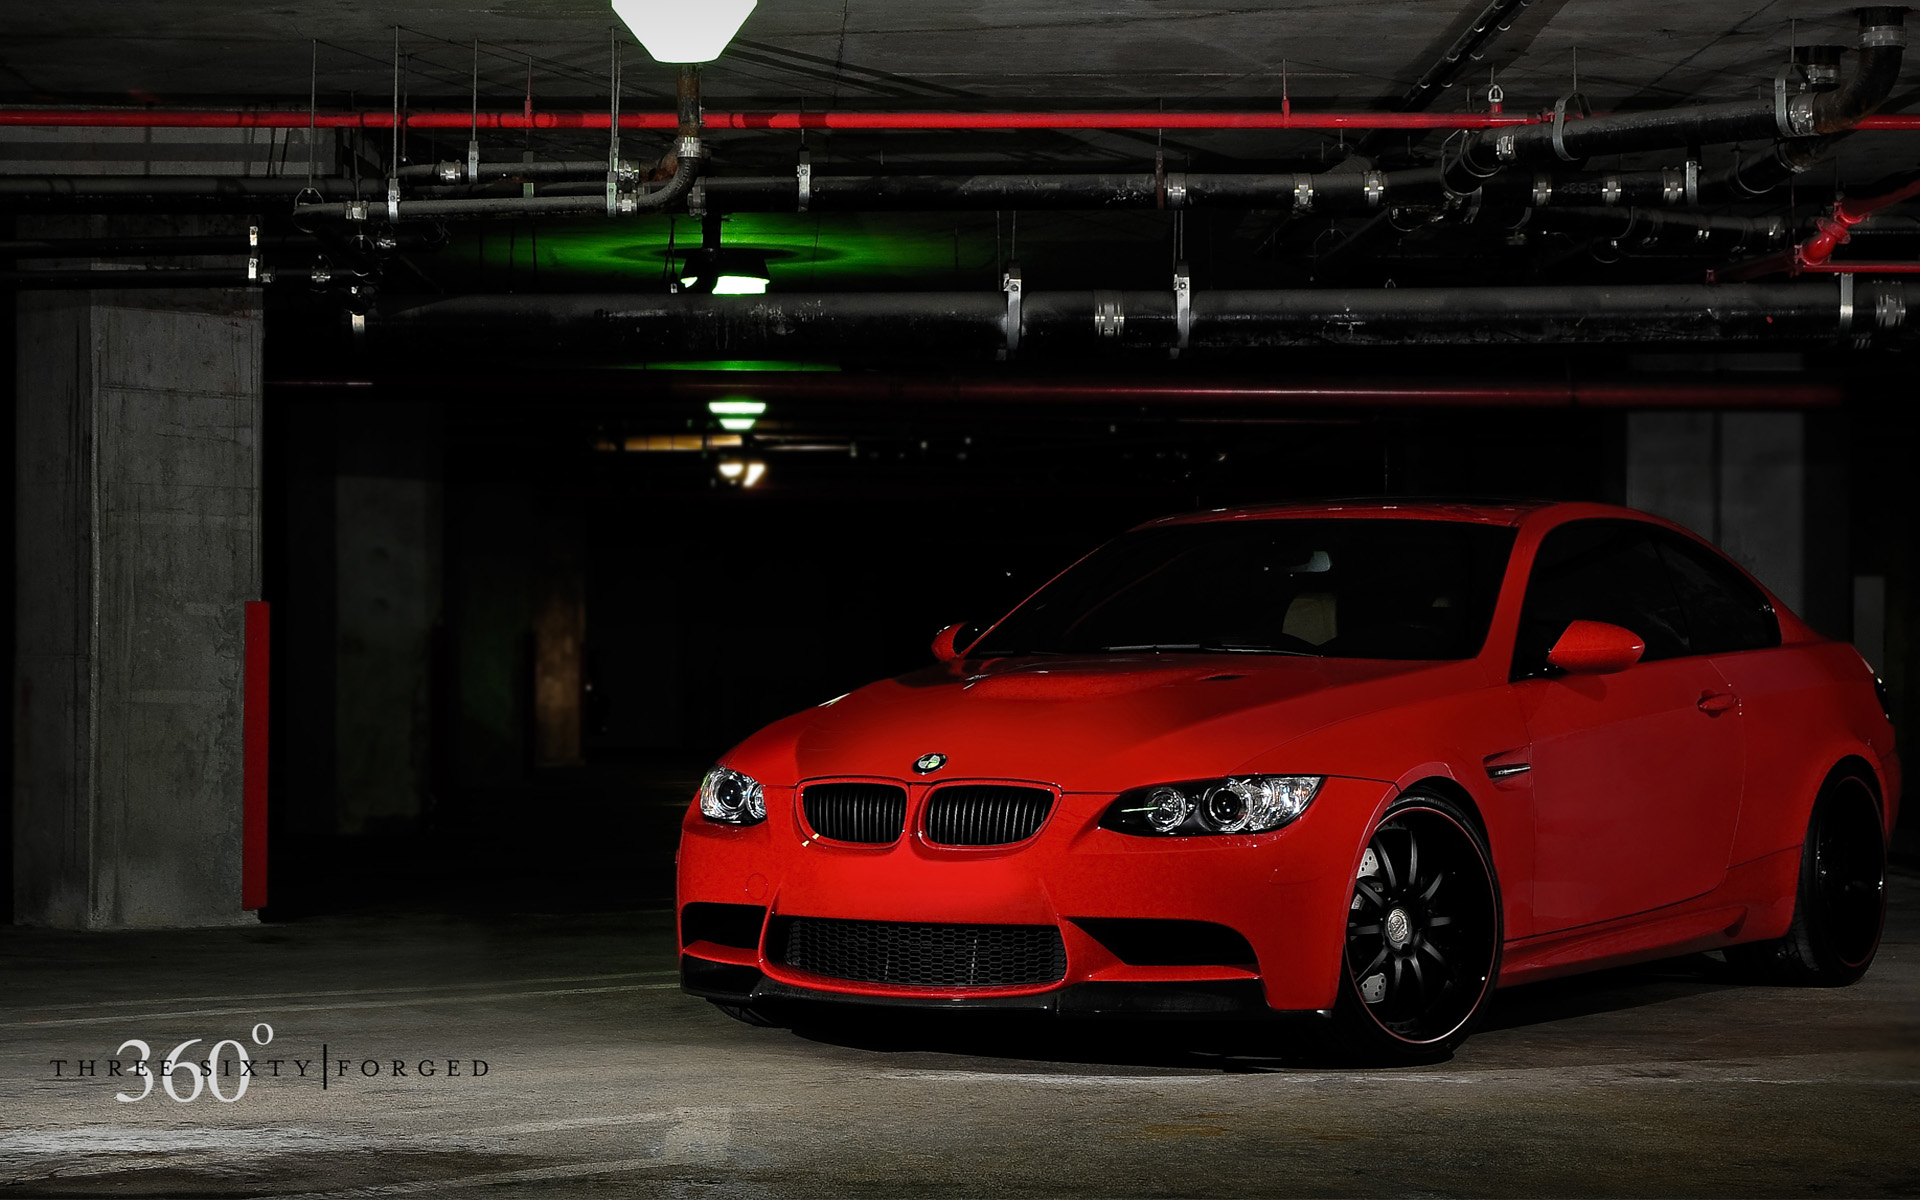 Download Red Bmw M3 Wallpaper Black And Red Bmw 1609047 Hd Wallpaper Backgrounds Download